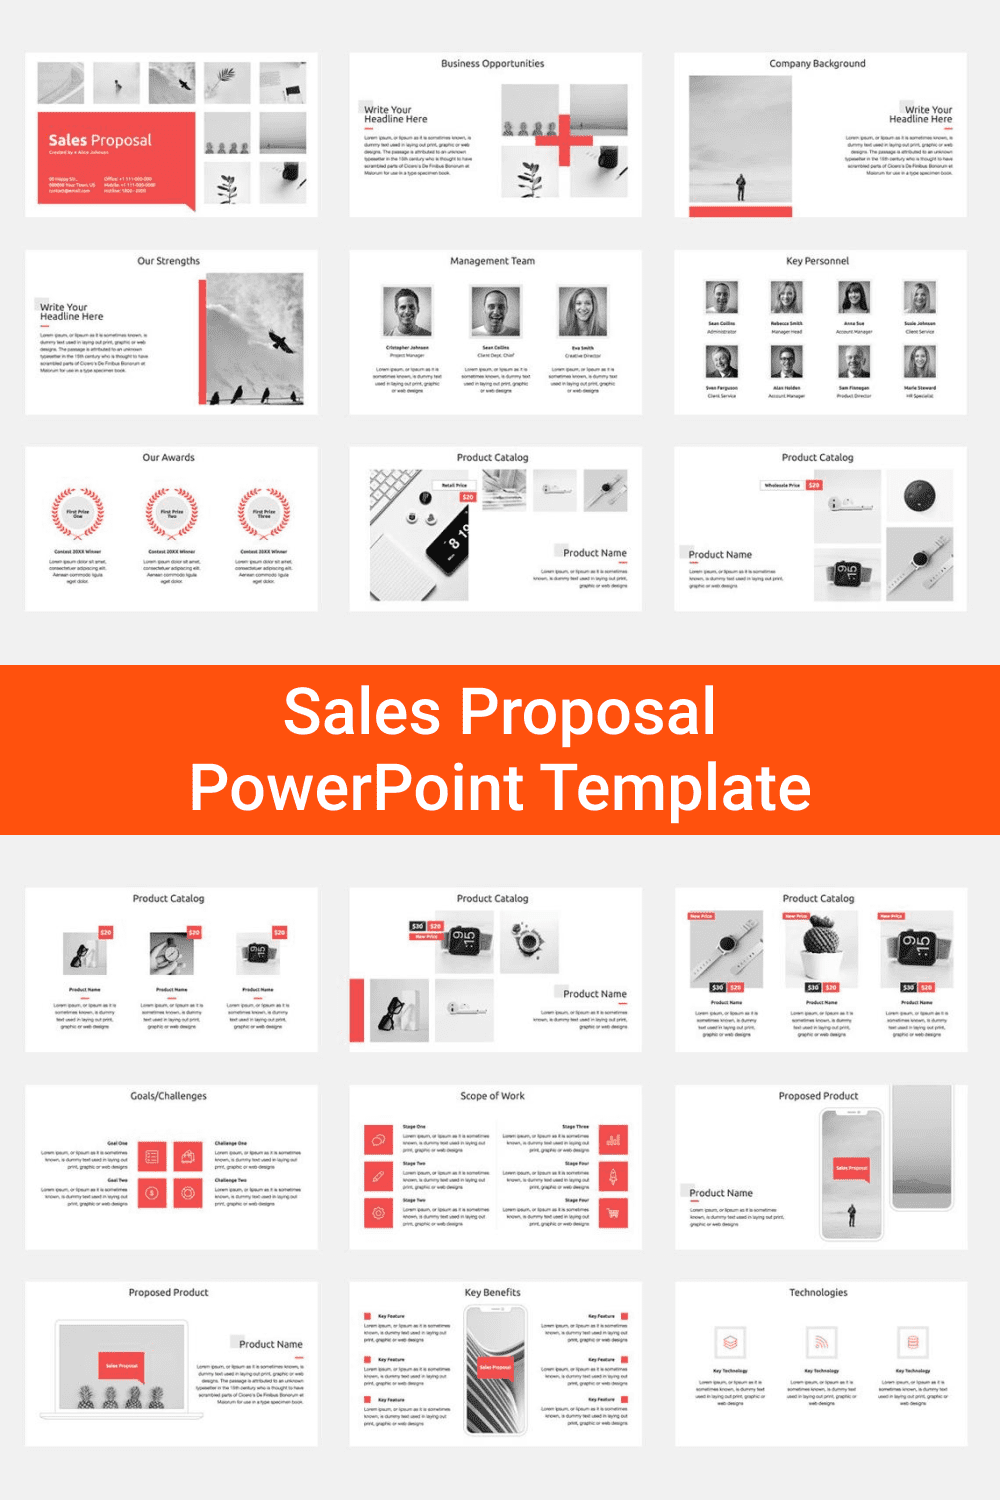 Sales Proposal PowerPoint Template.